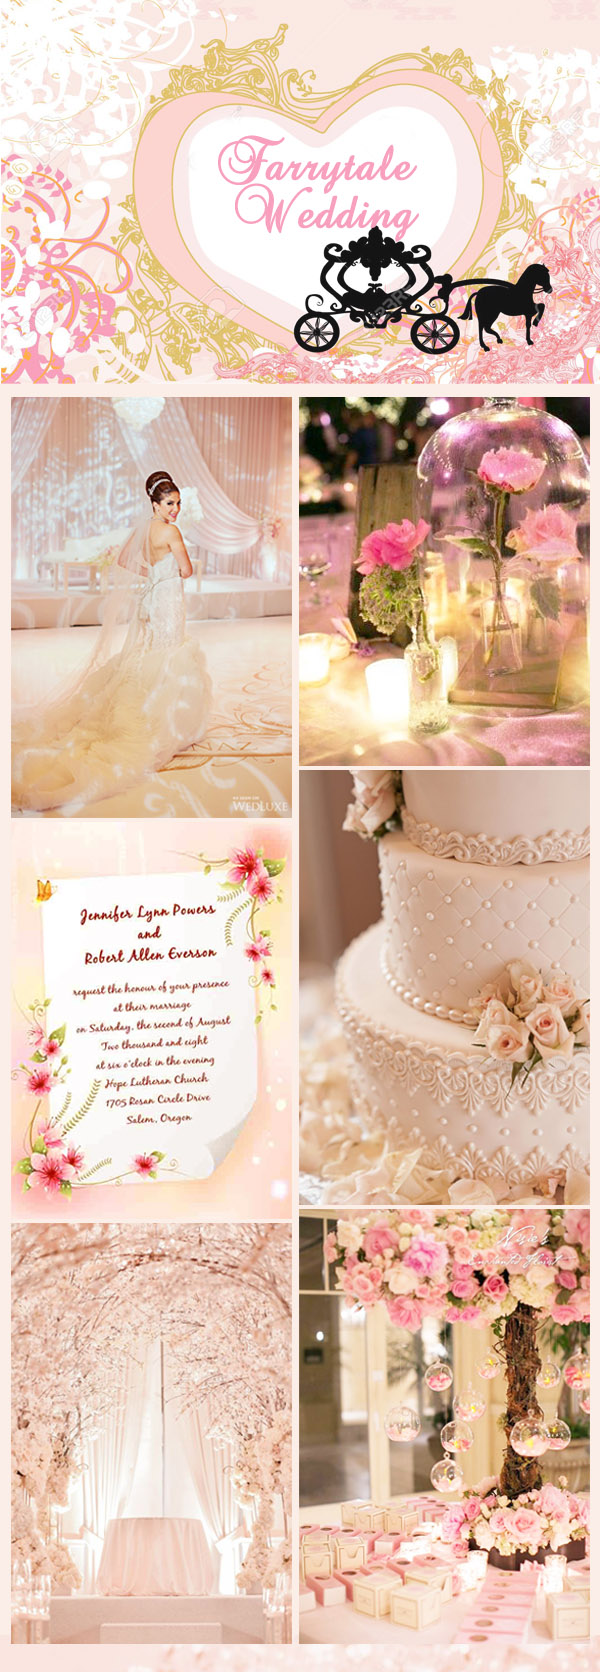 Top Ten Wedding Theme Ideas With Beautiful Invitations Part